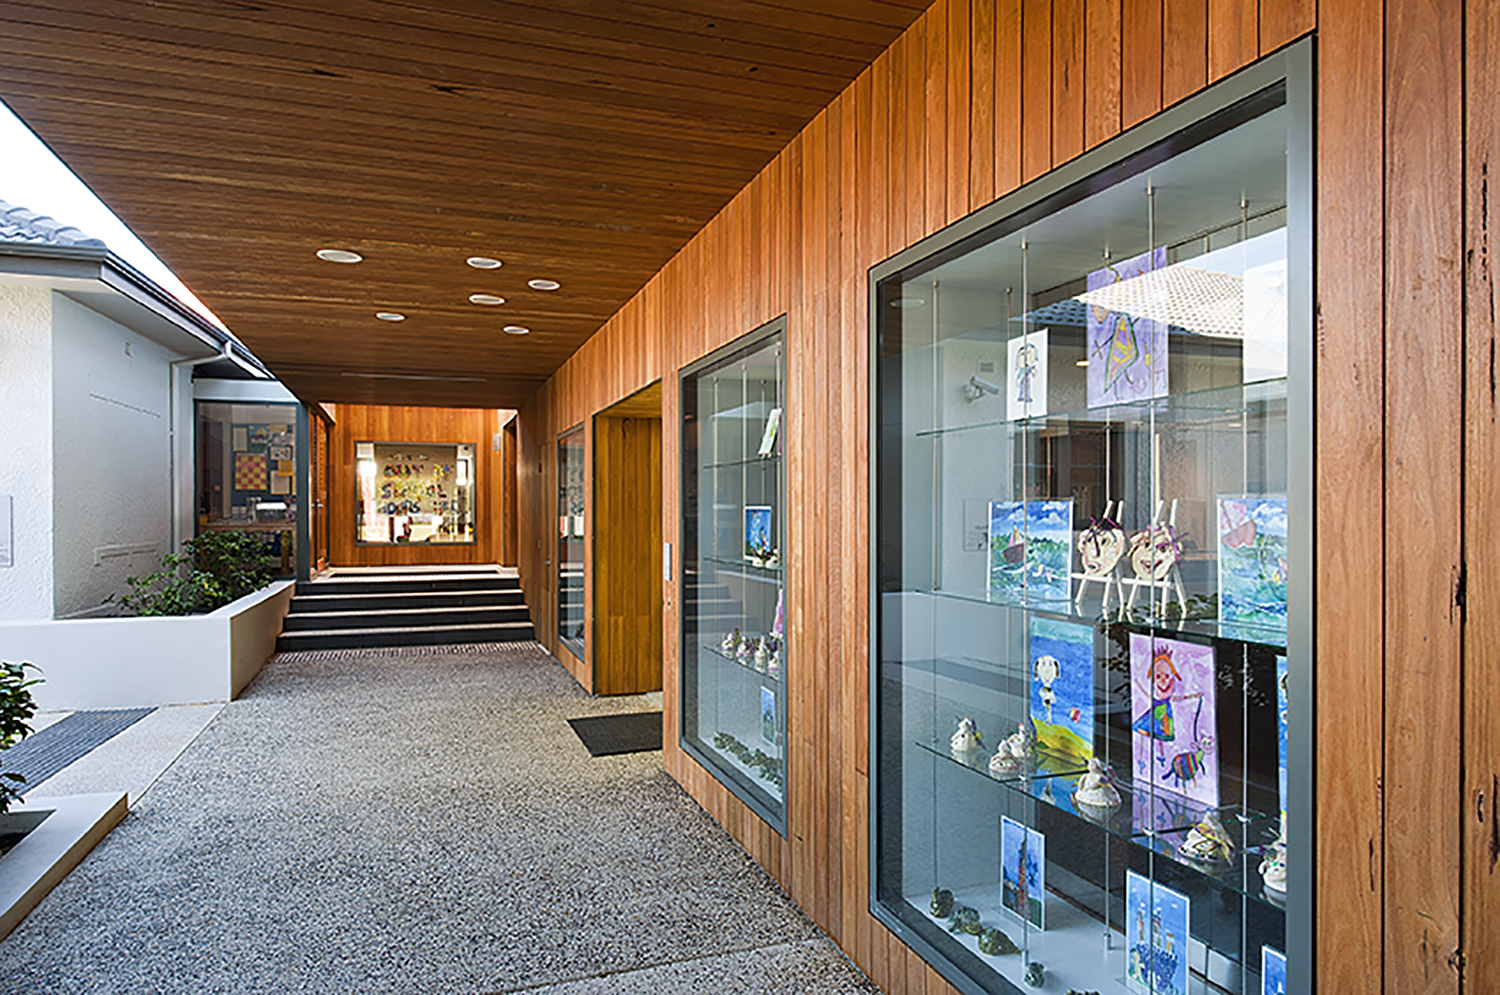 Perth-College-Early-Years-Mount-Lawley-Perth-Architecture9.jpg